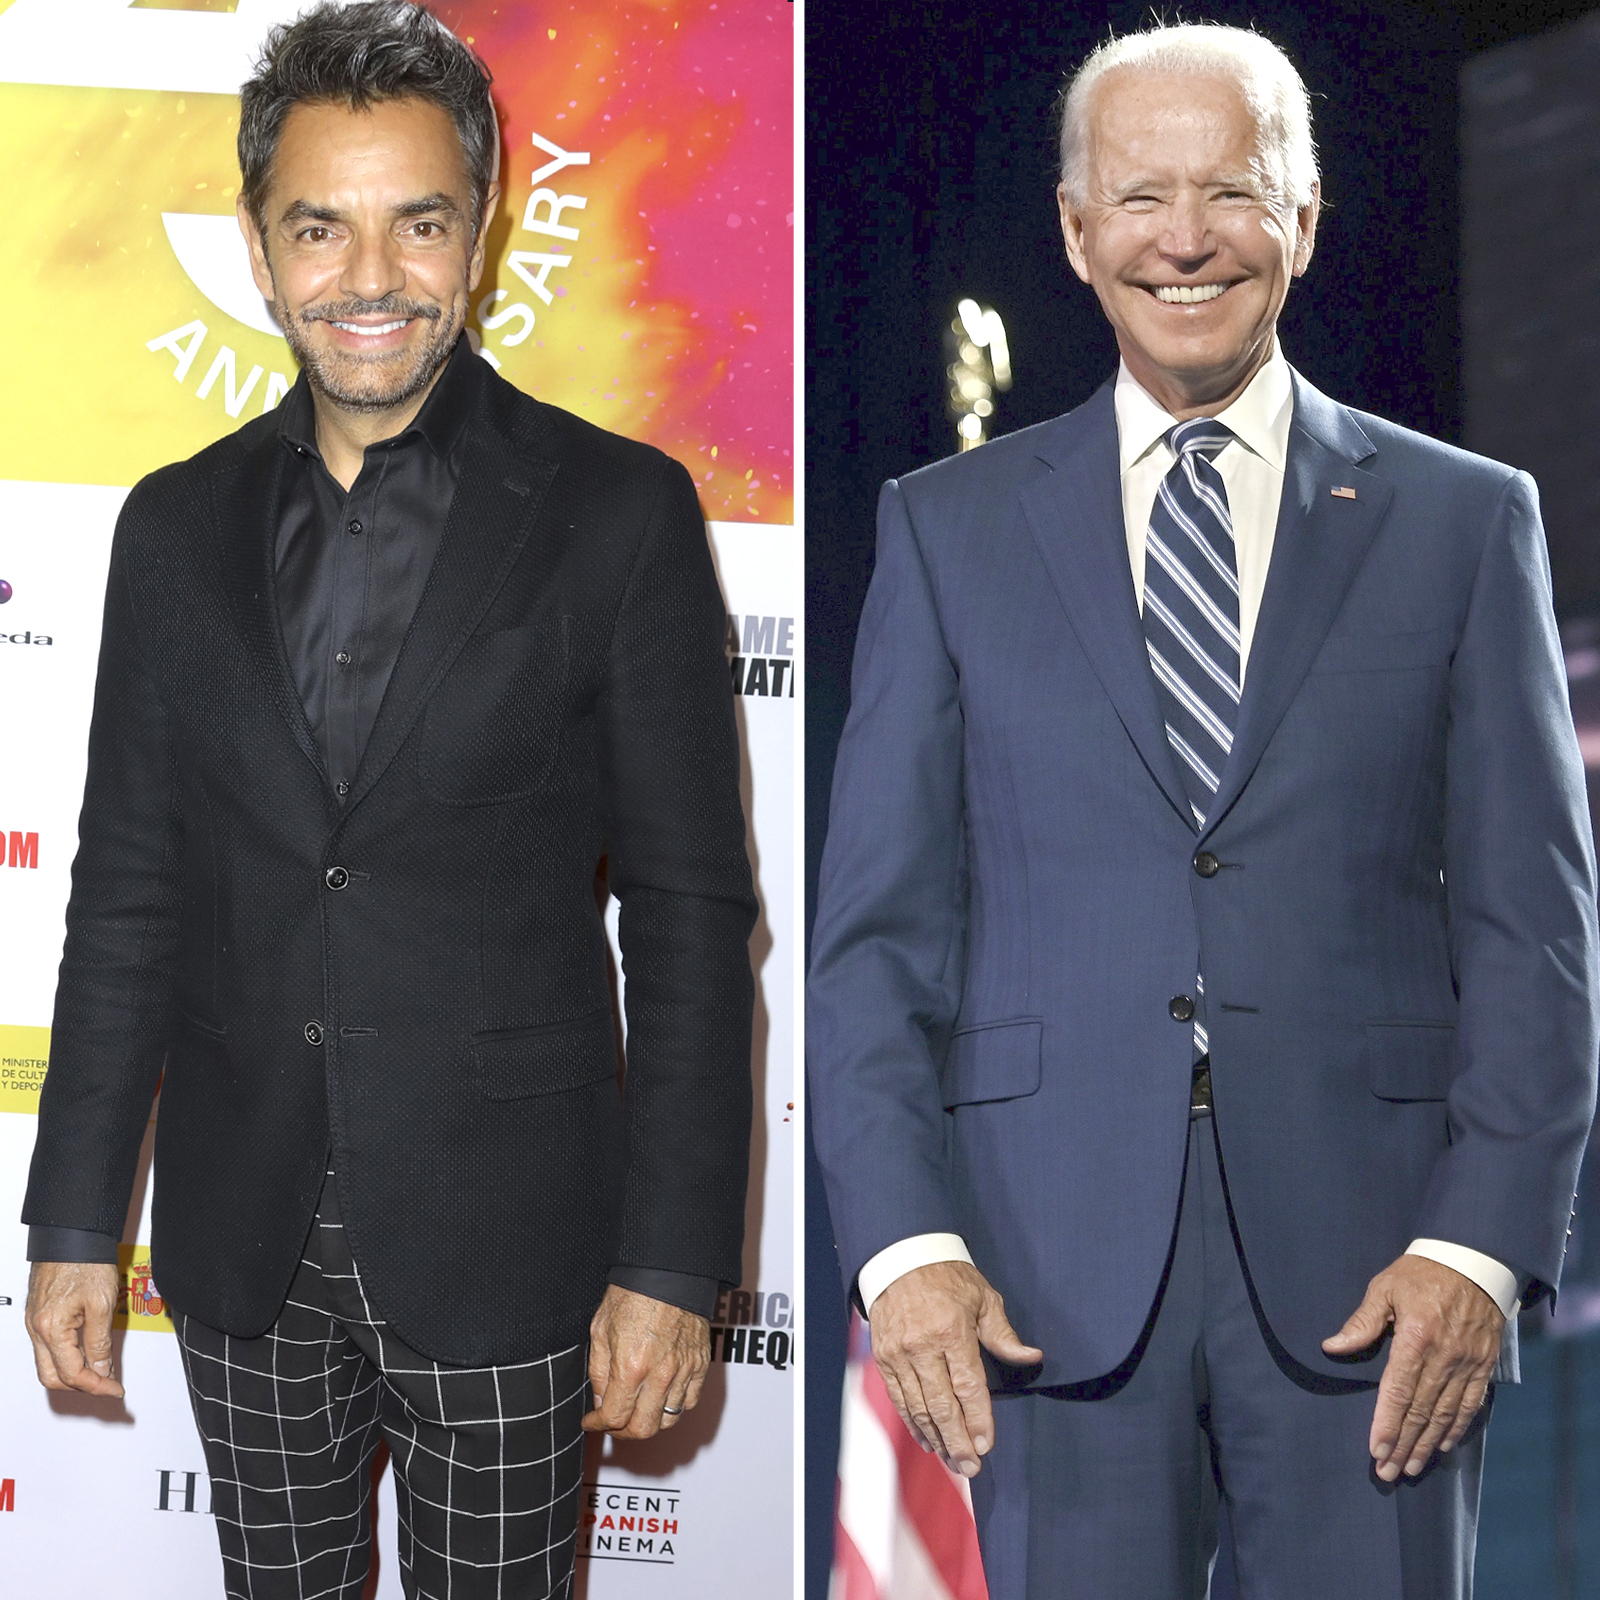 Eugenio Derbez y Joe Biden